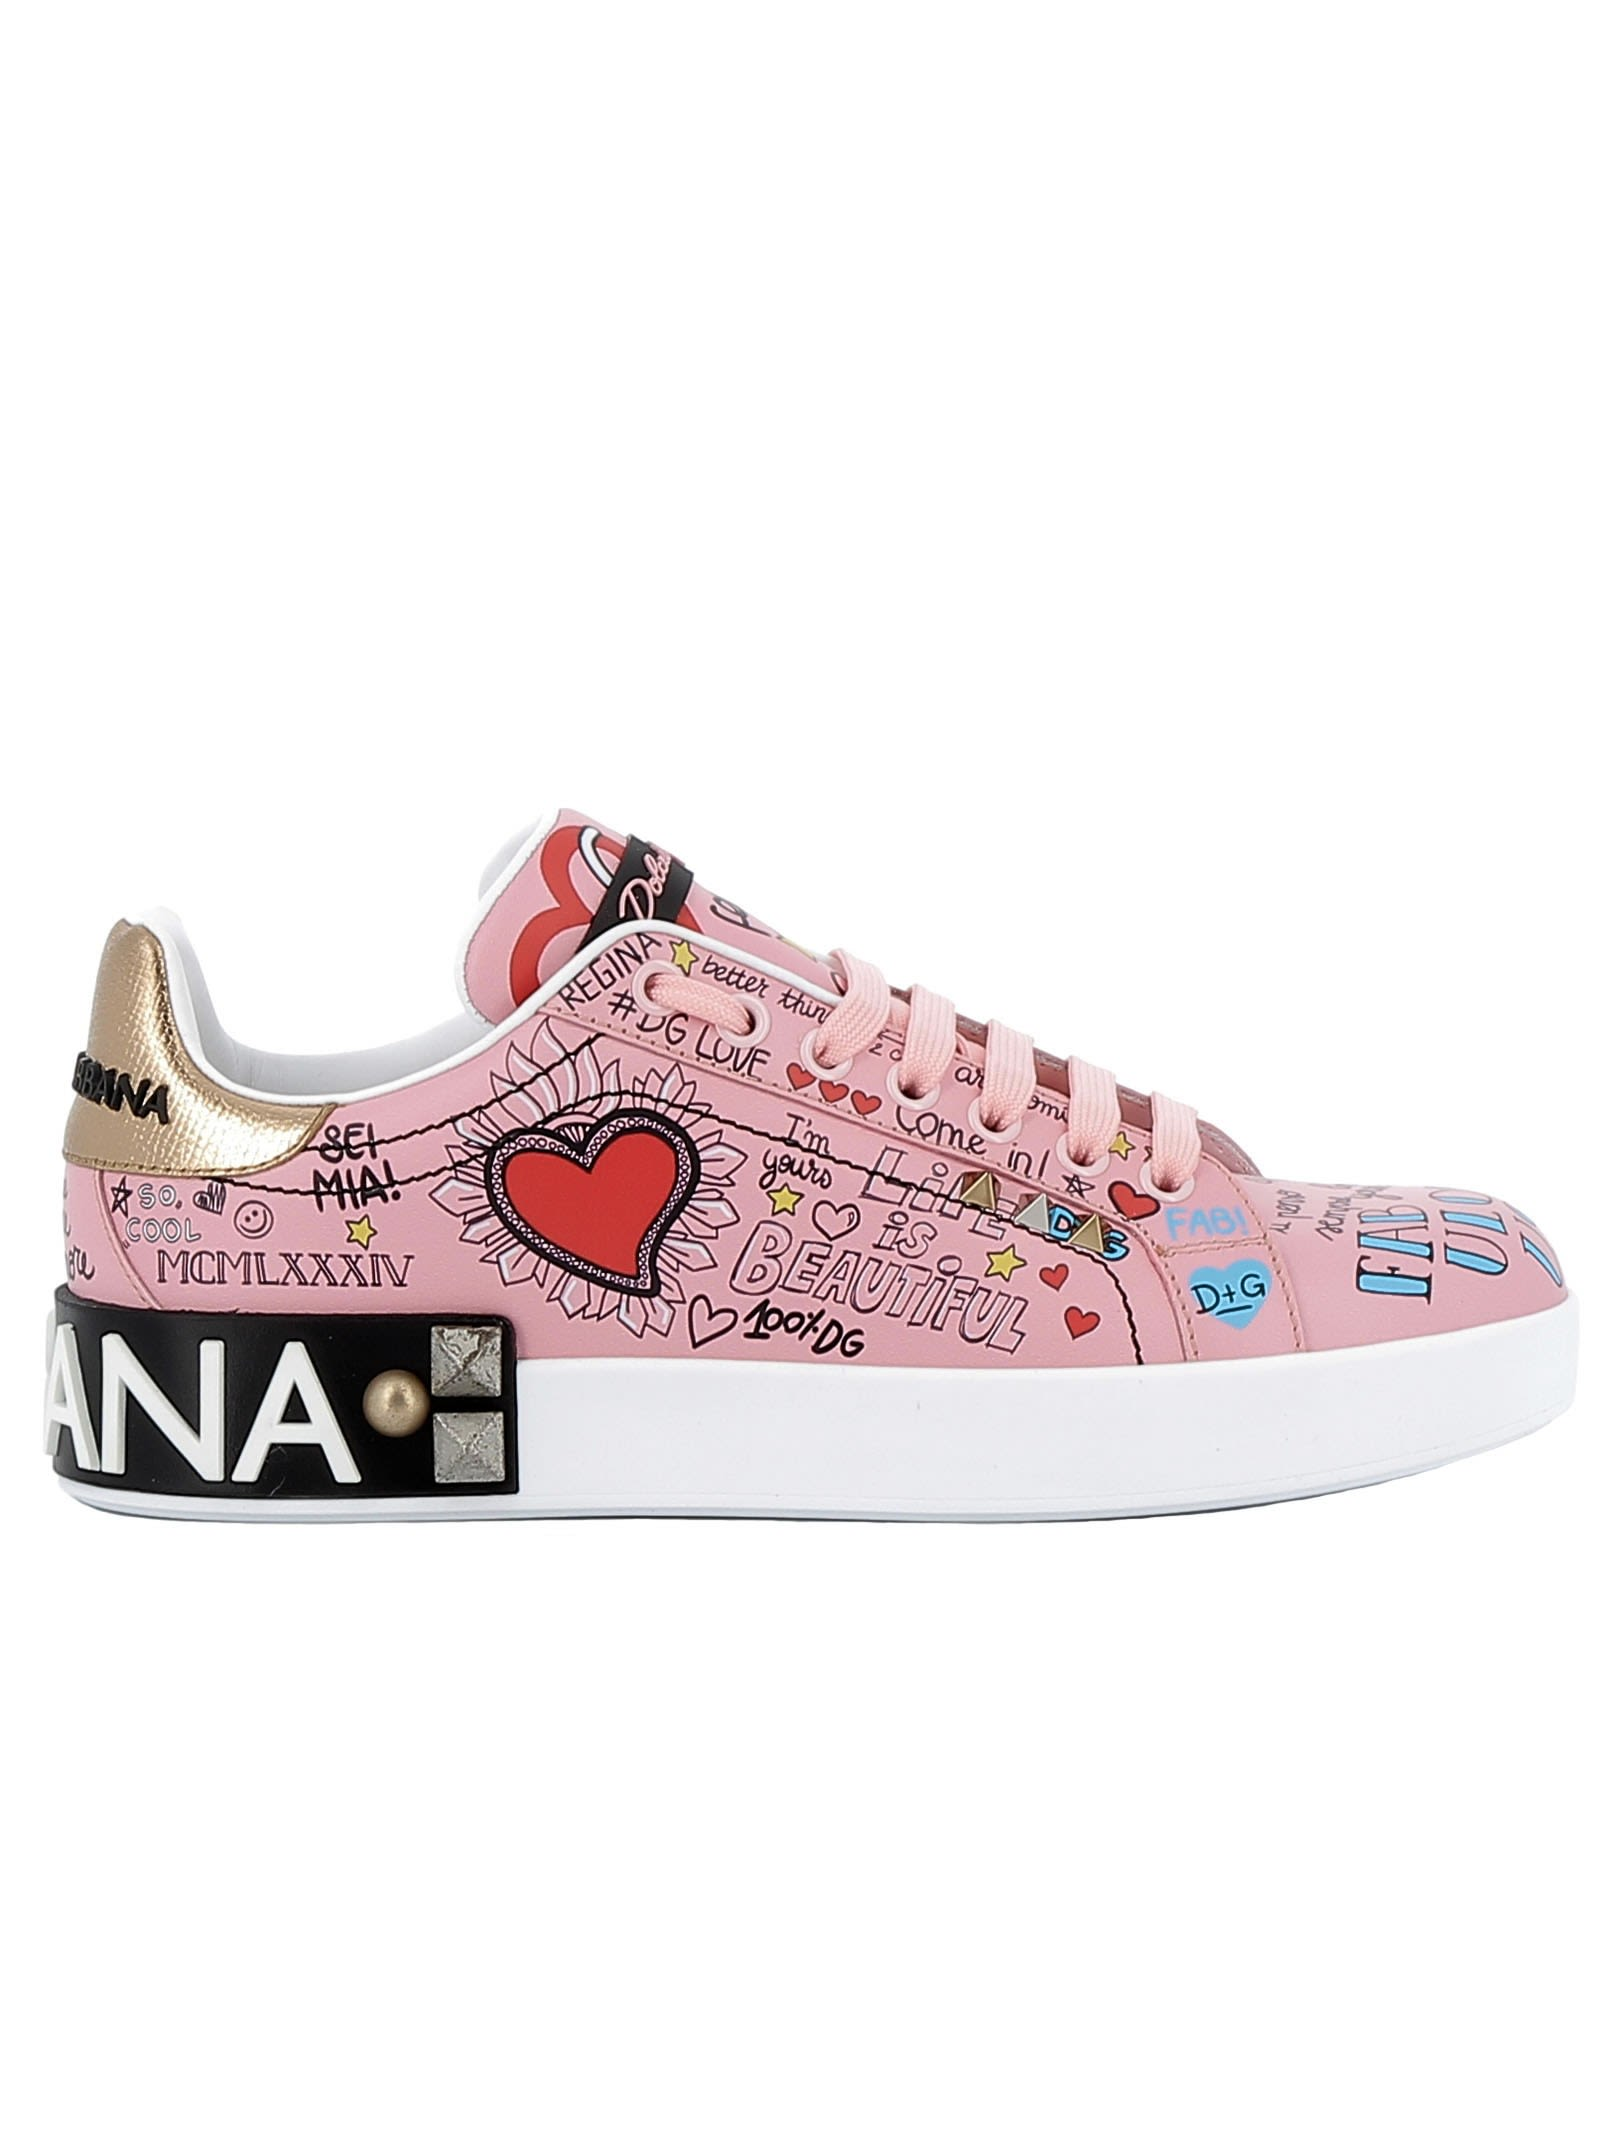 Dolce & Gabbana Pink Leather Sneakers